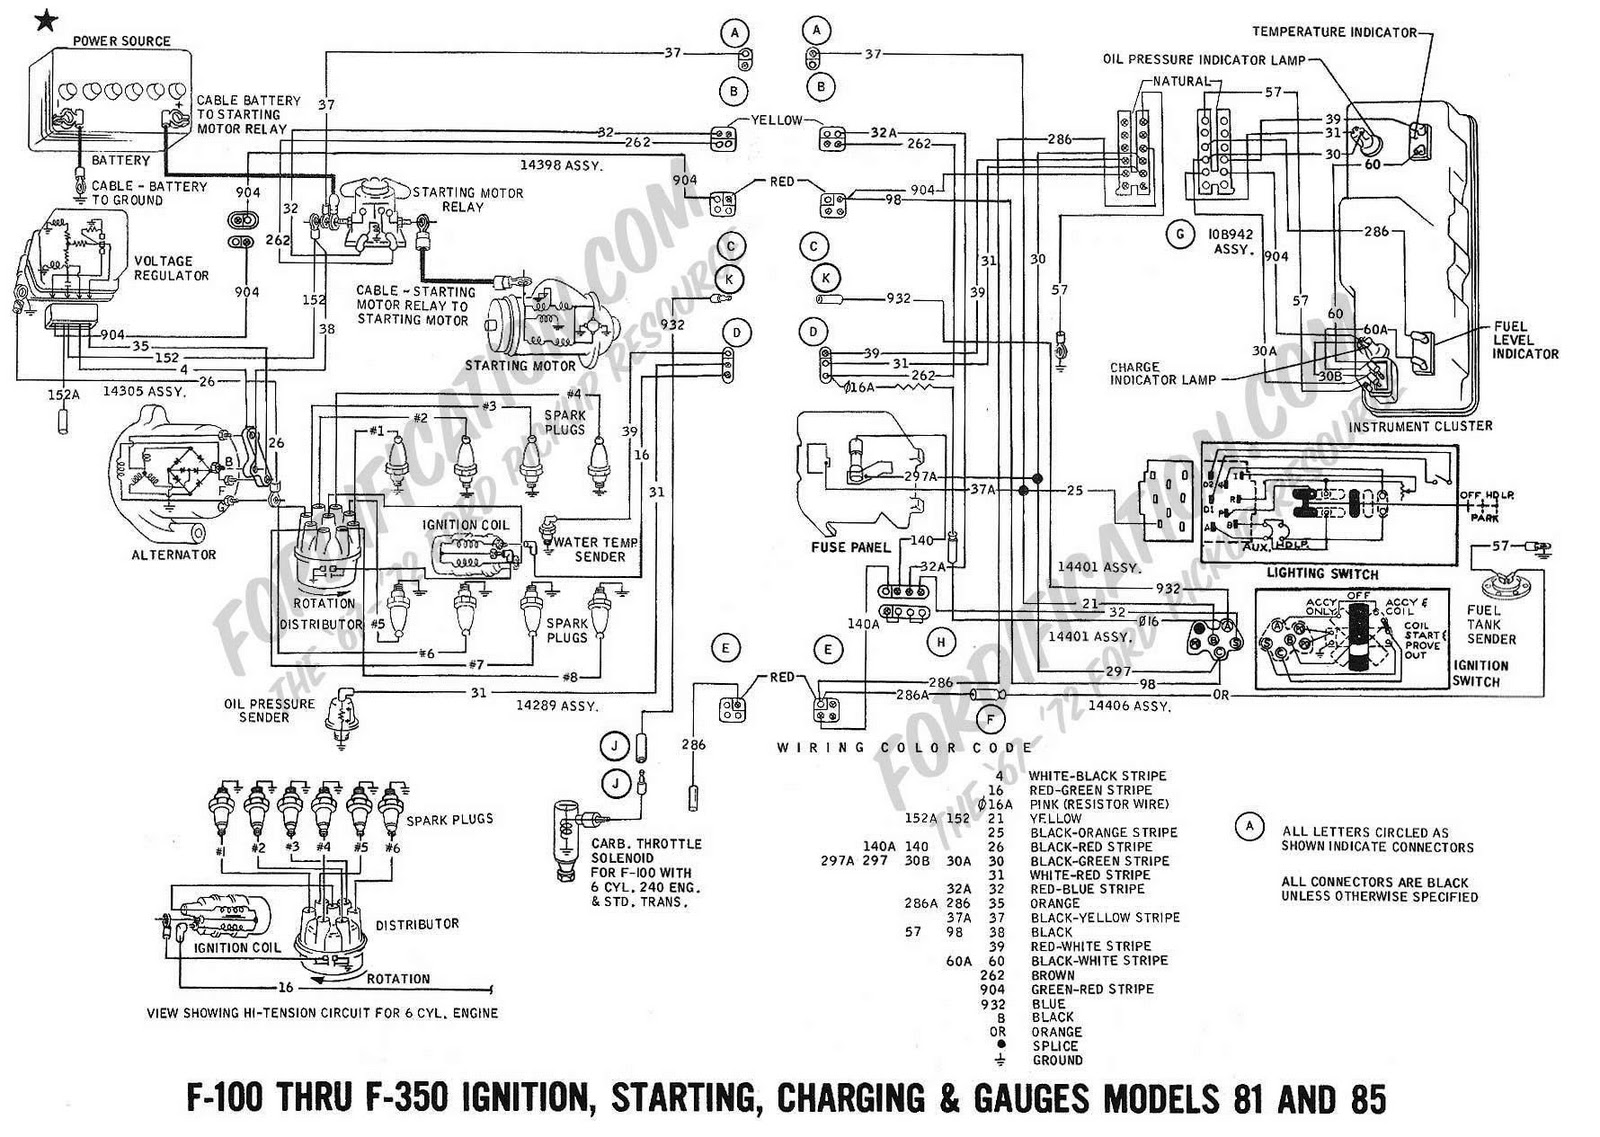 1986 ford ignition switch wiring wiring diagram1986 ford f150 ignition wiring diagram 9 7 stromoeko de \\u2022